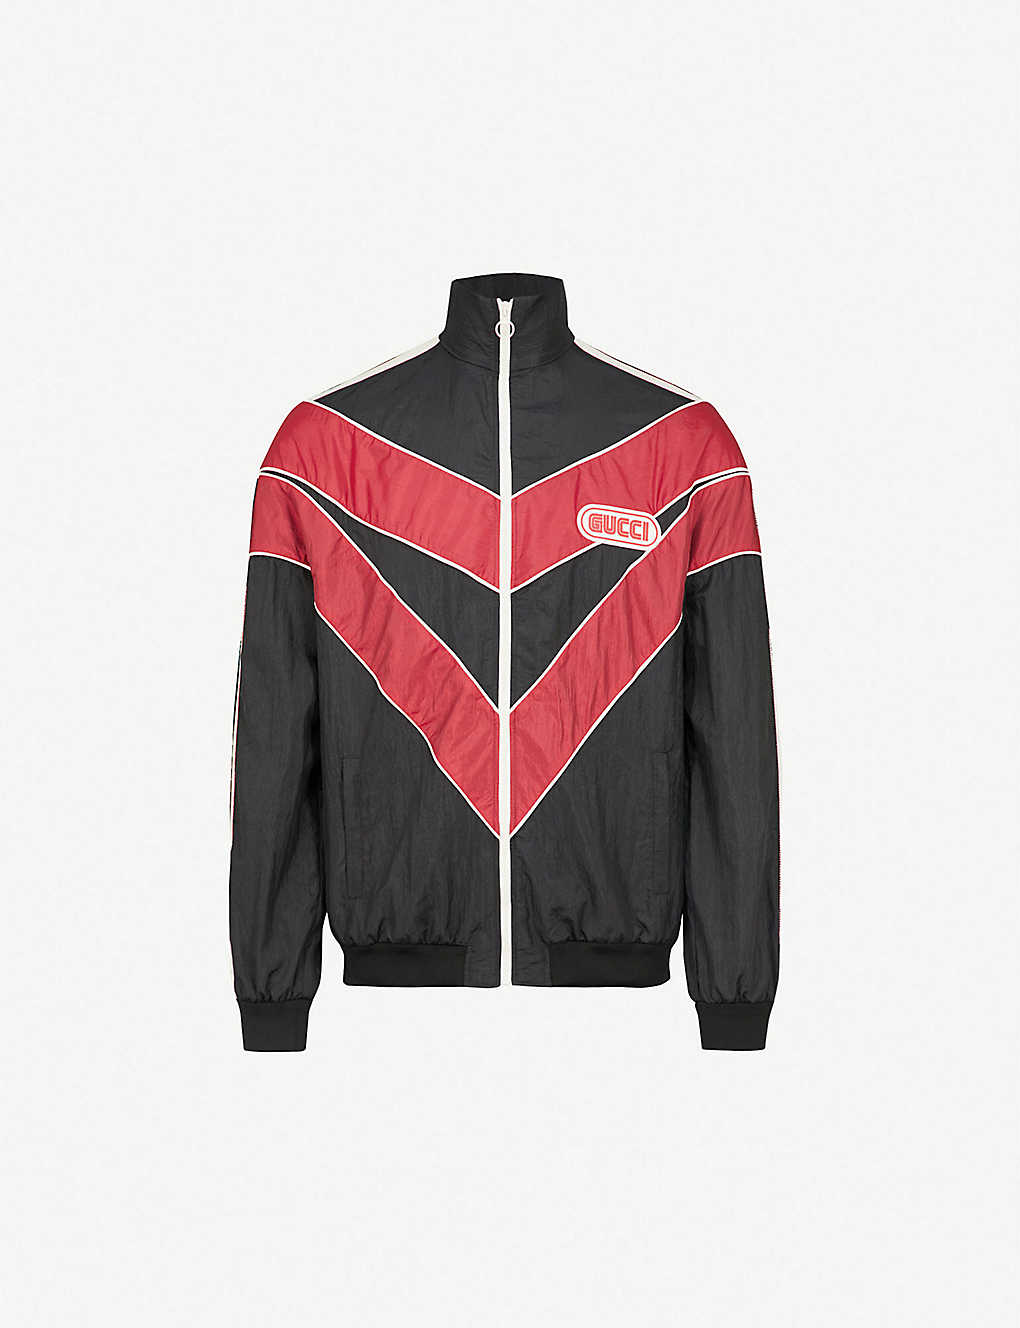 c42872311a09 GUCCI - Spiritismo sports shell jacket | Selfridges.com